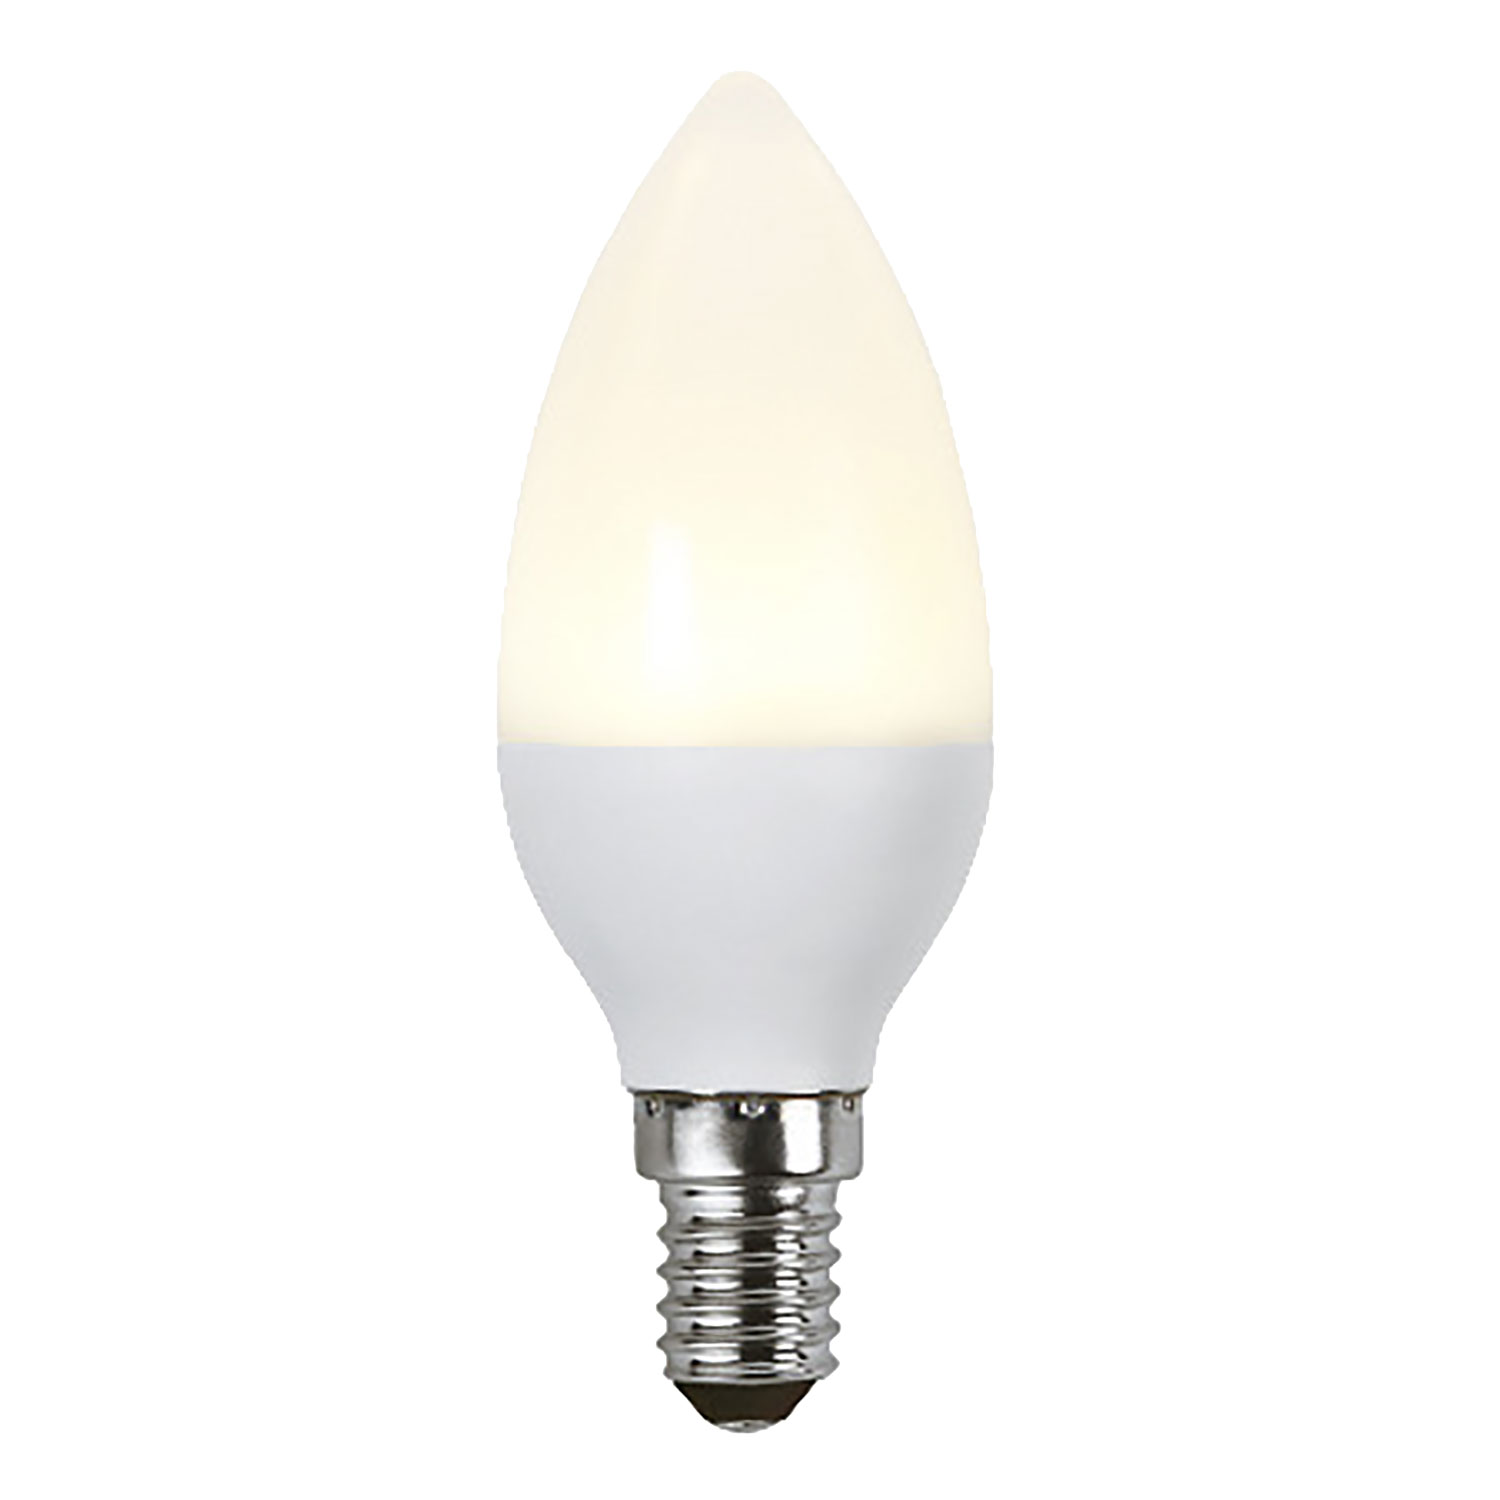 LED-lampa E14 C37 opaque Ra90, white